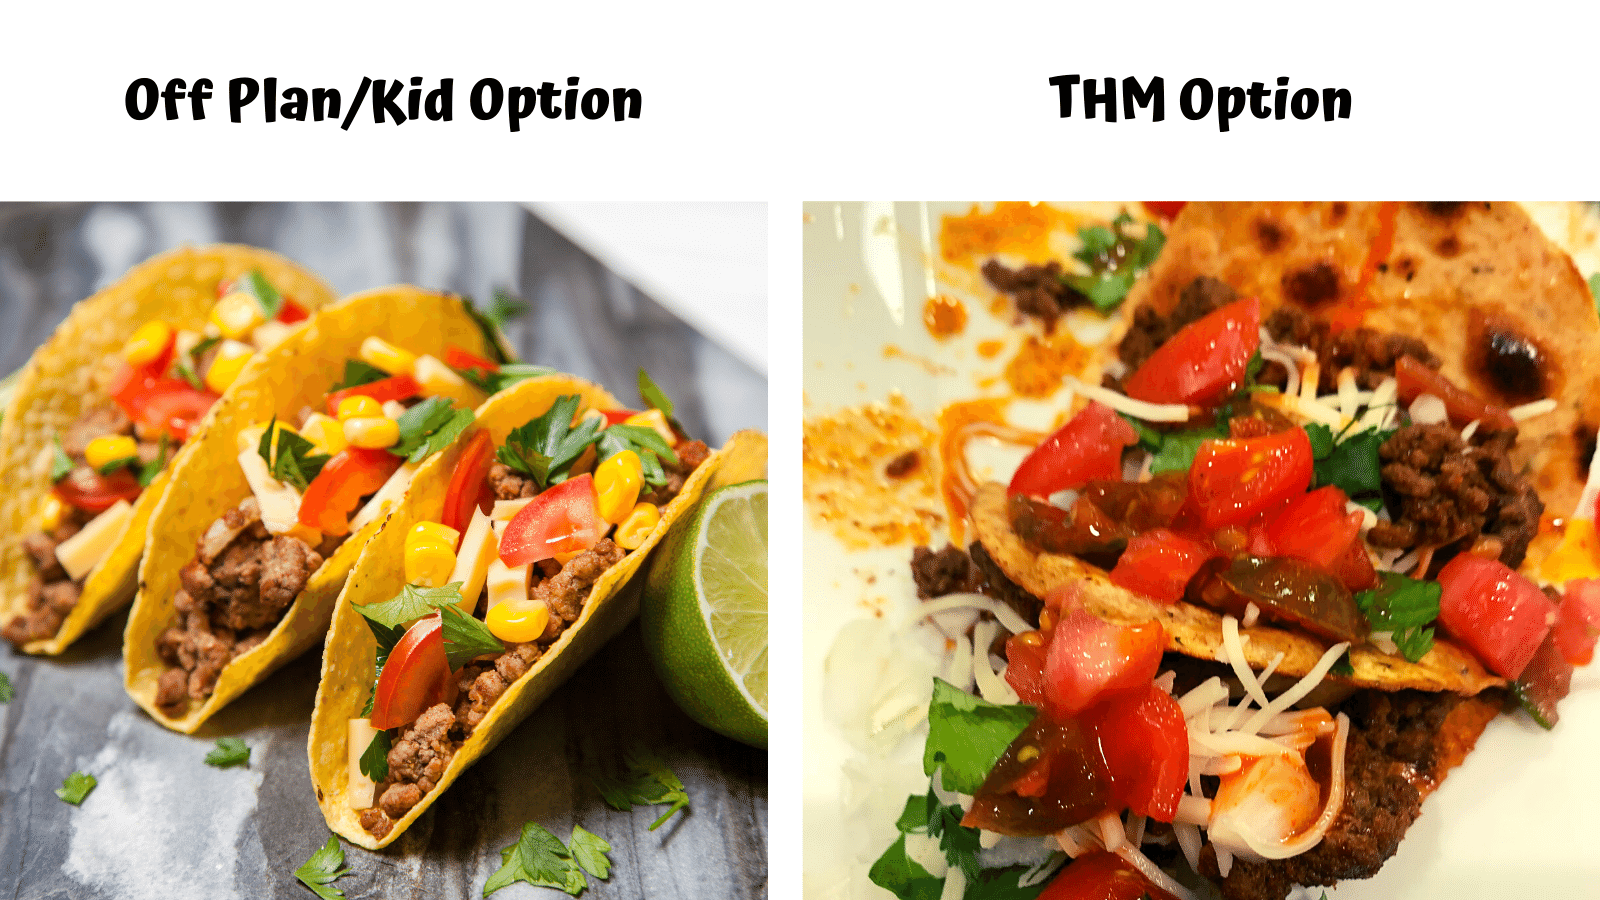 Tacos 2 ways - THM On Plan & Family option